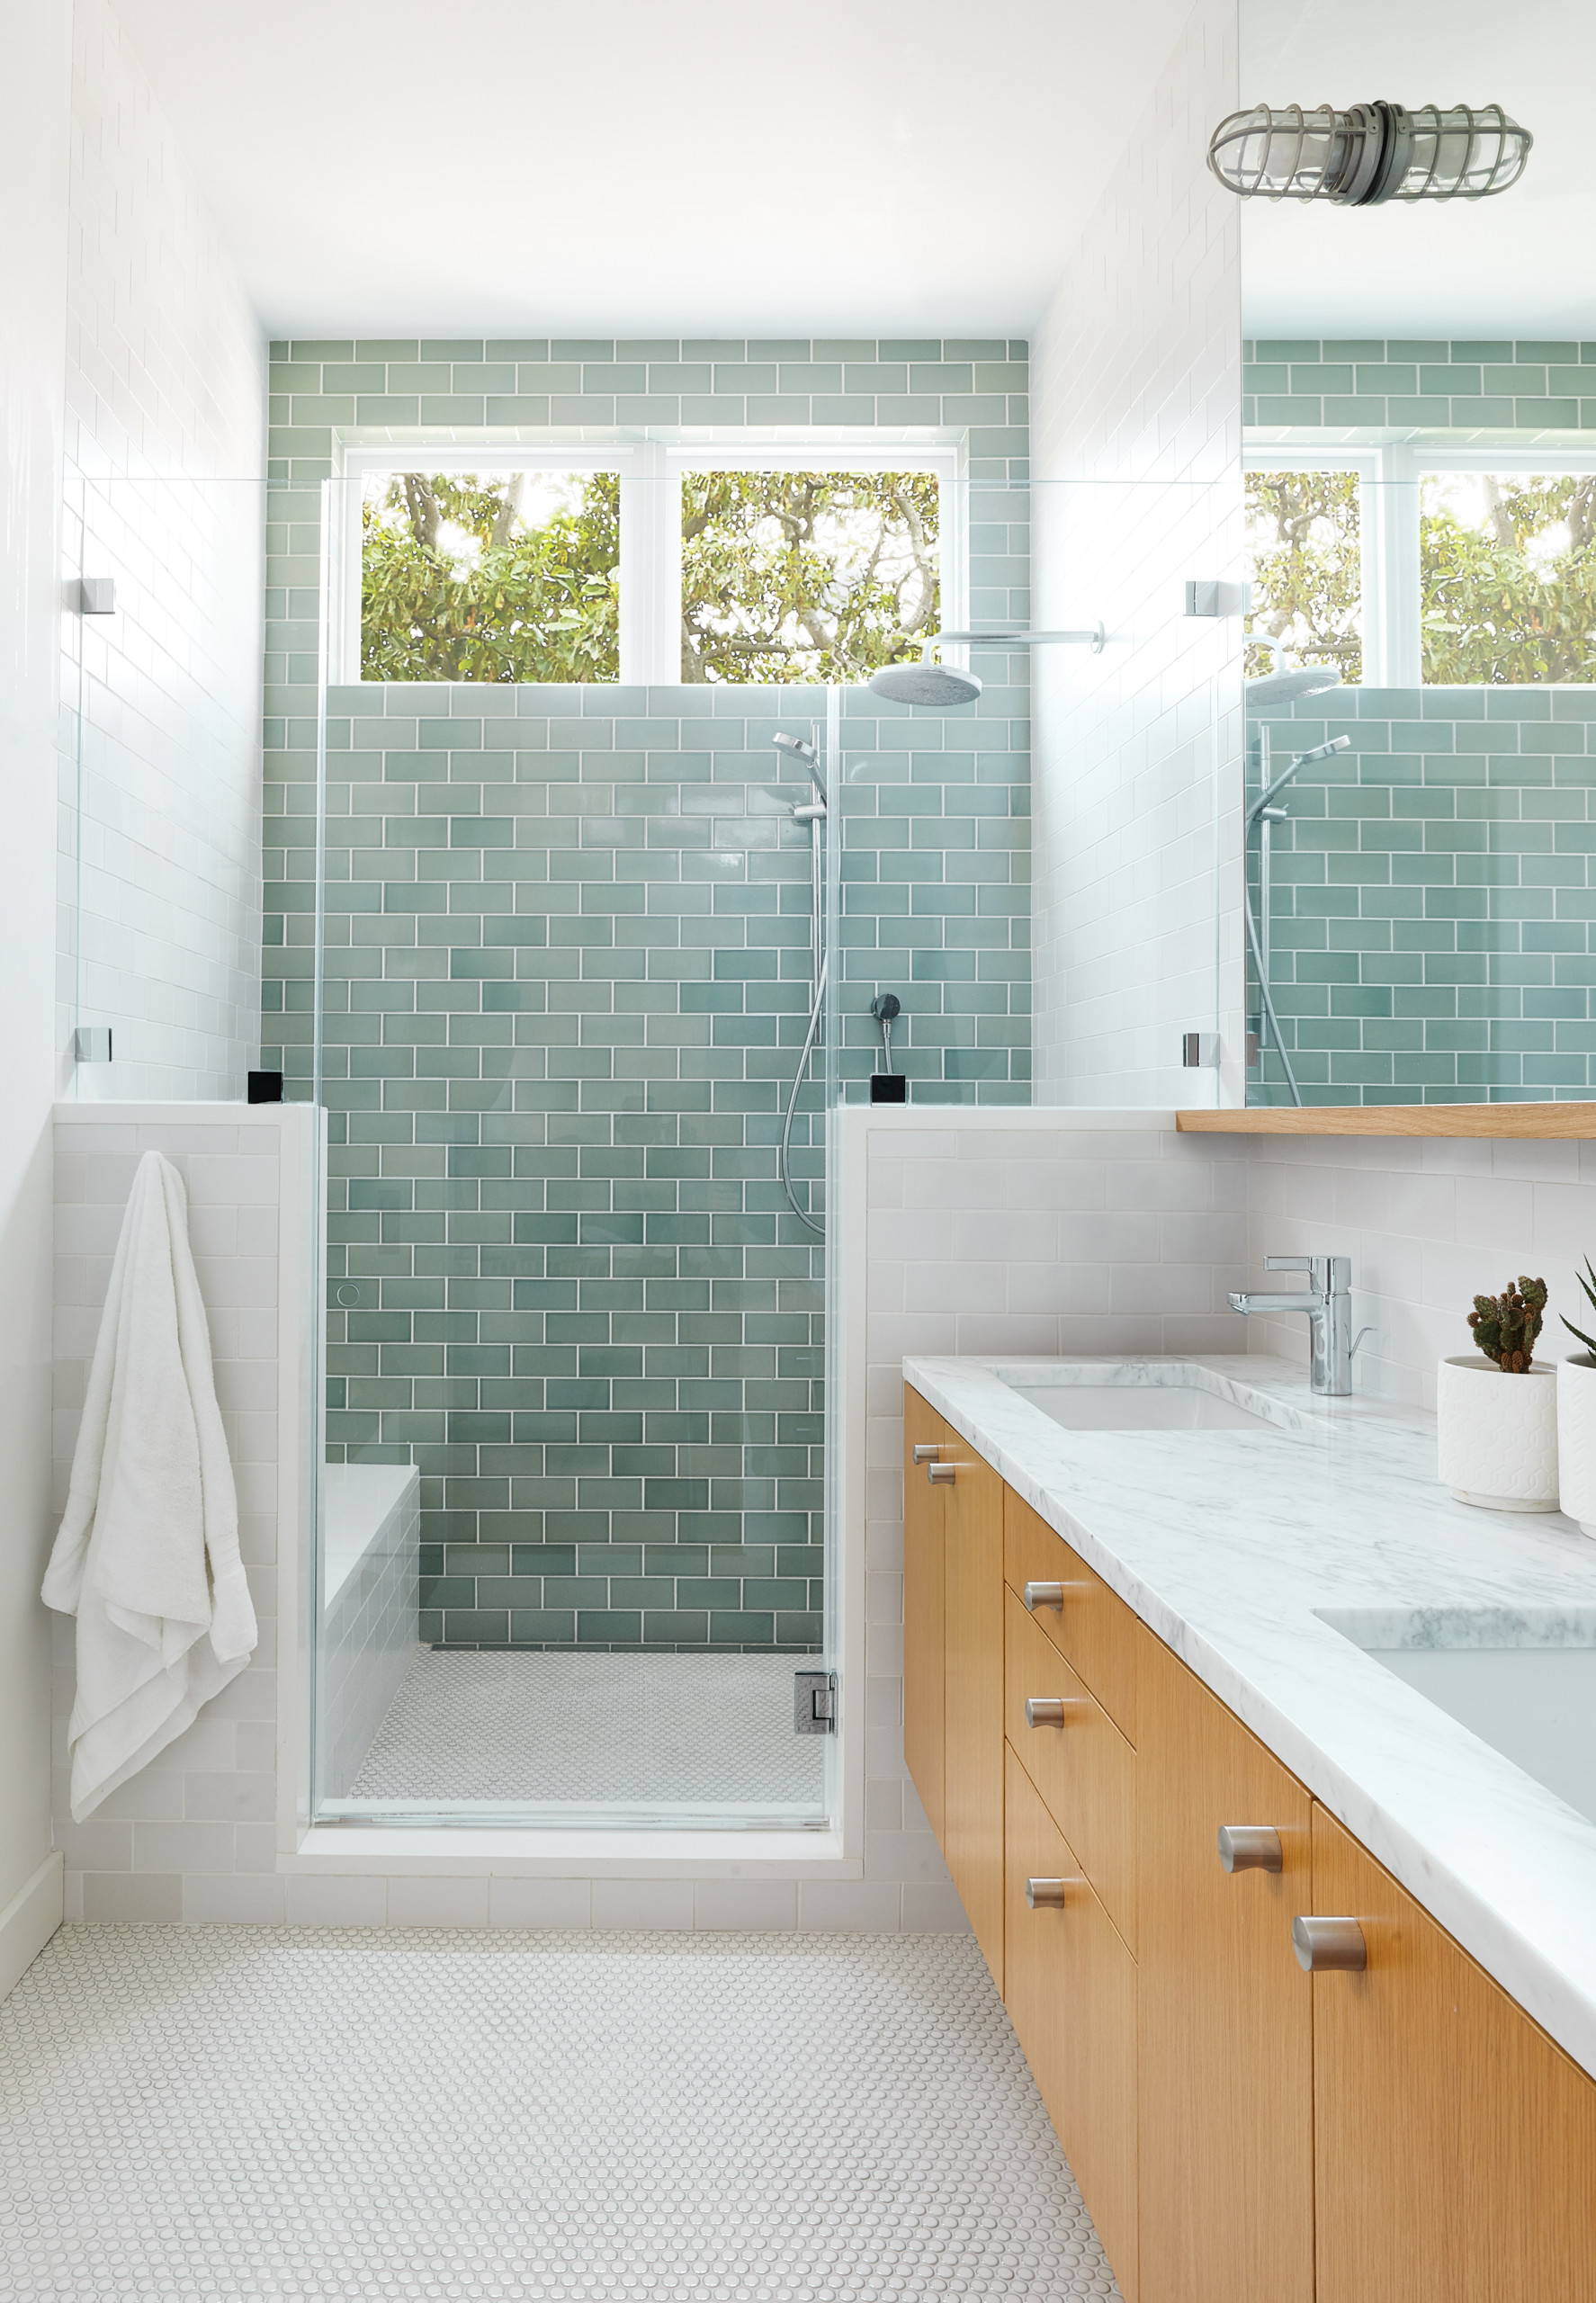 75 Beautiful Green Tile Bathroom Pictures Ideas February 2021 Houzz